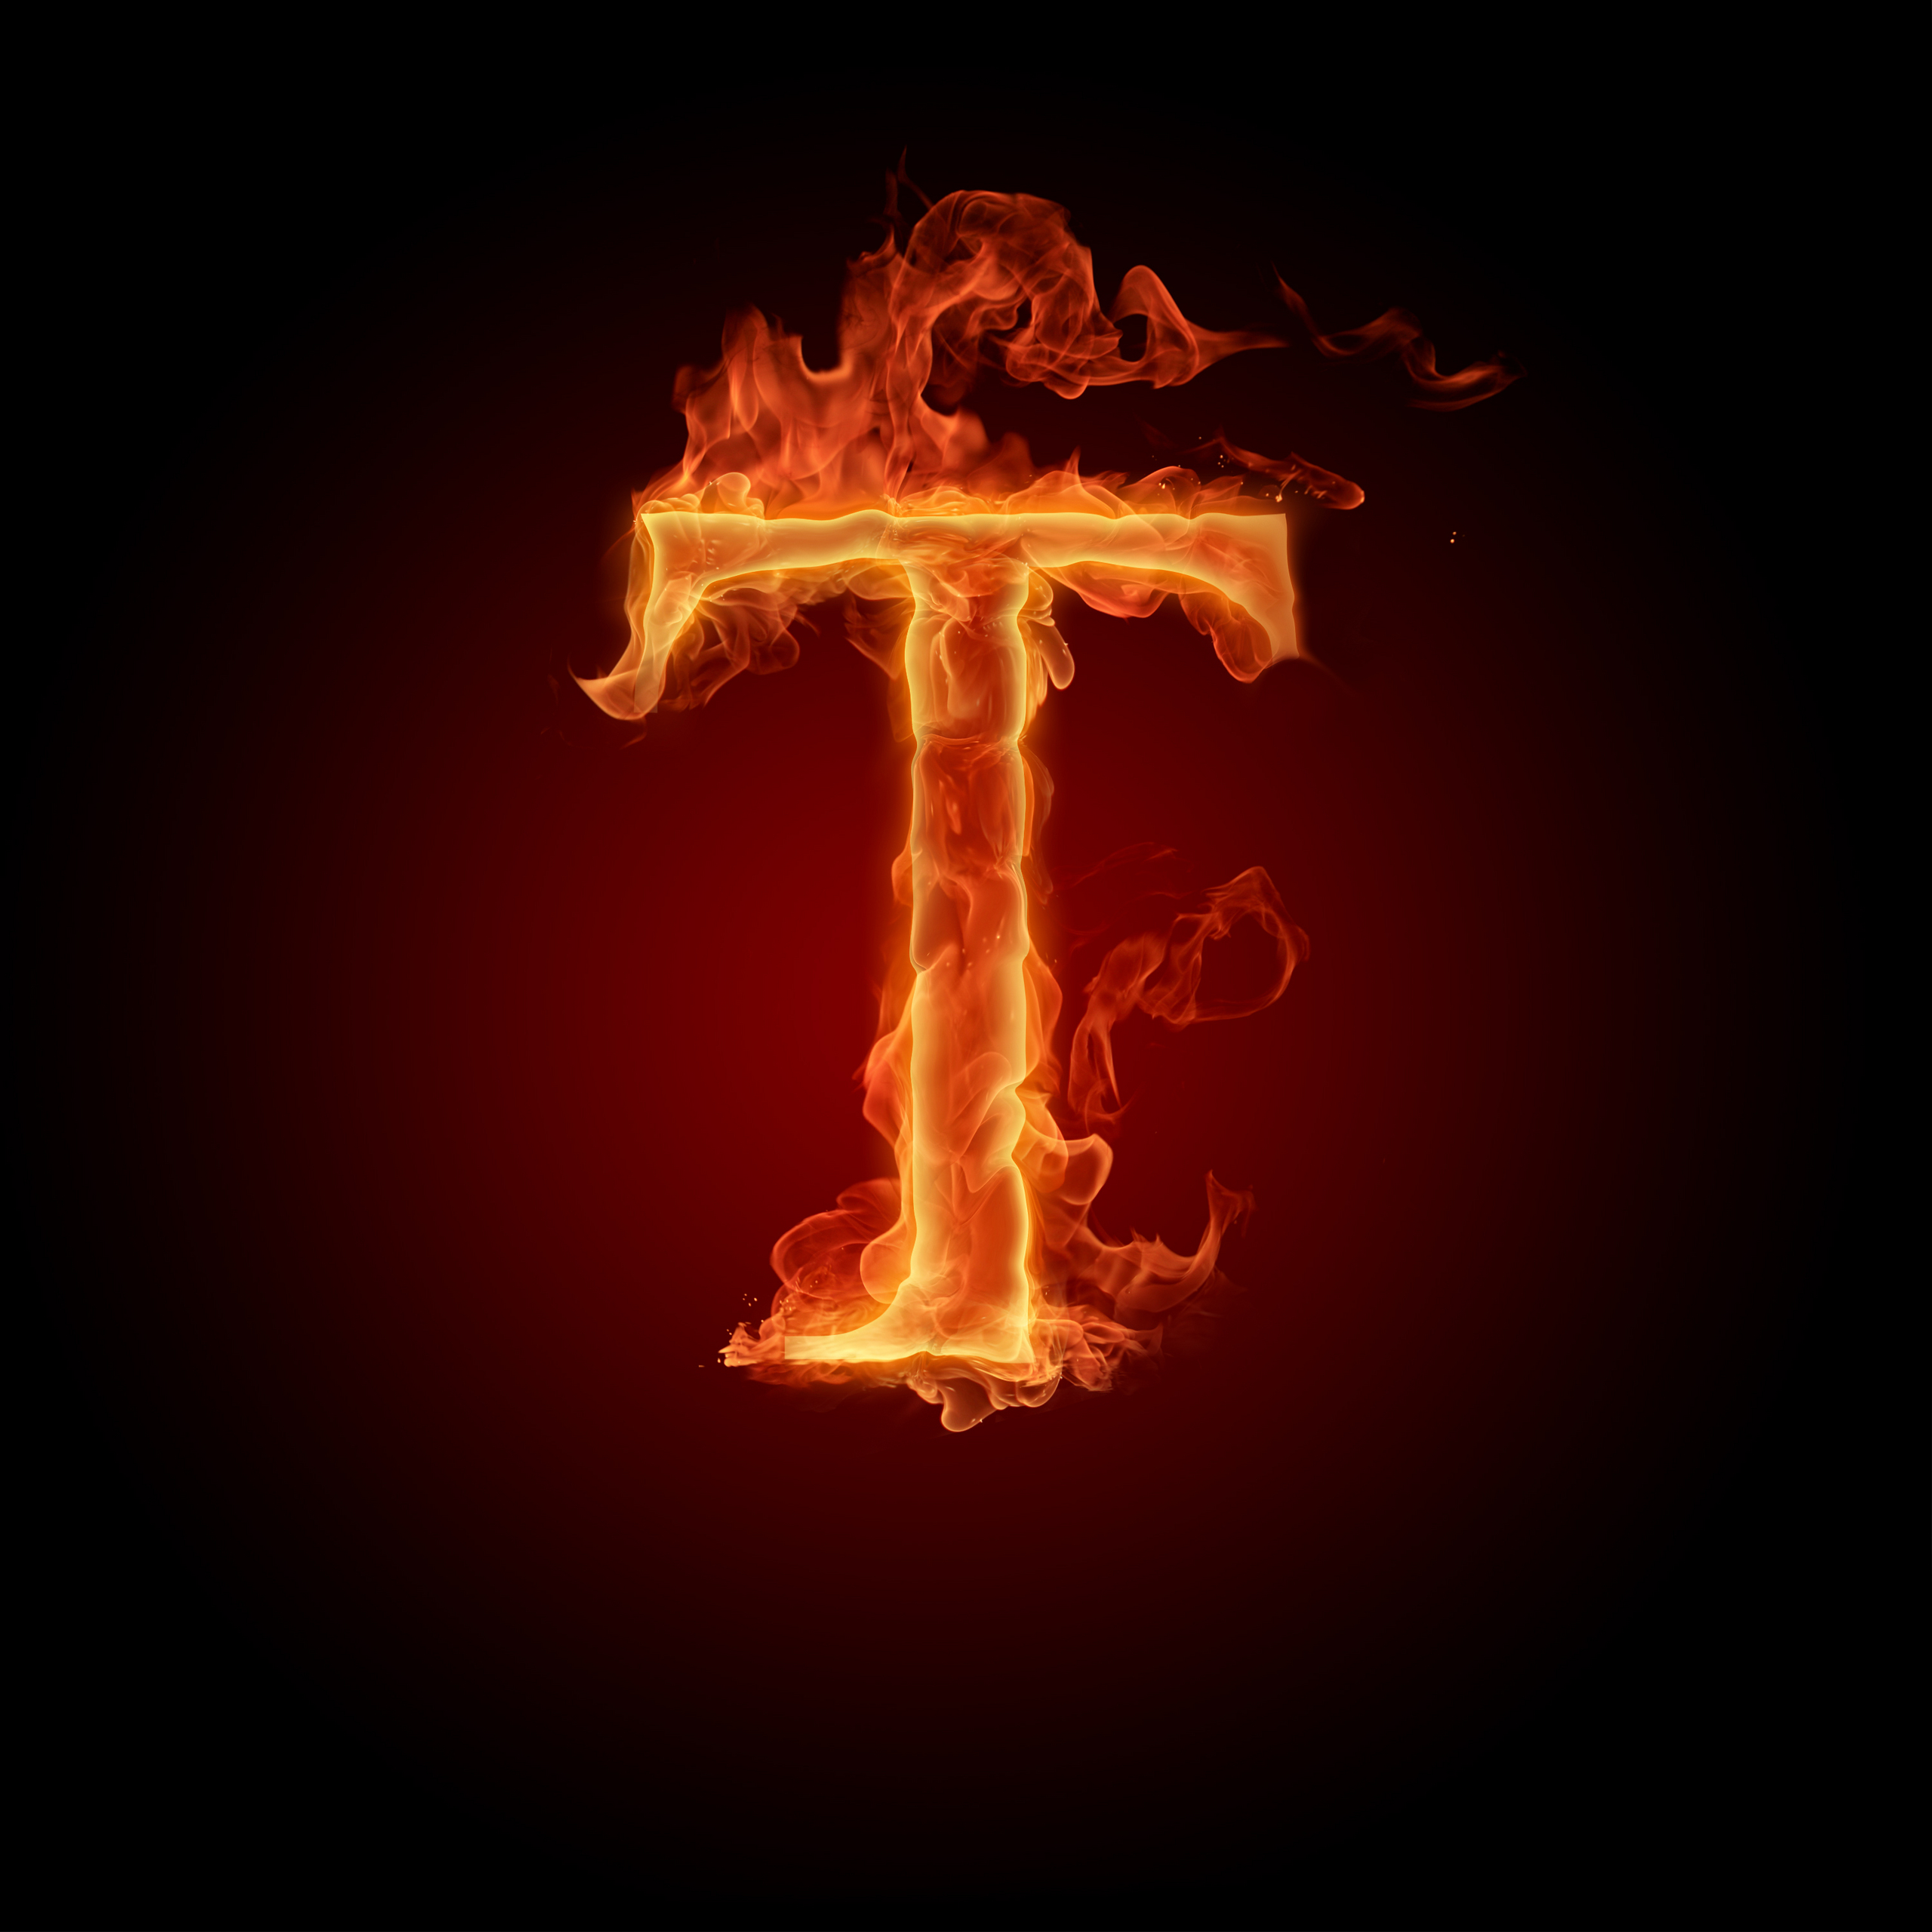 T Alphabet hd wallpaper image